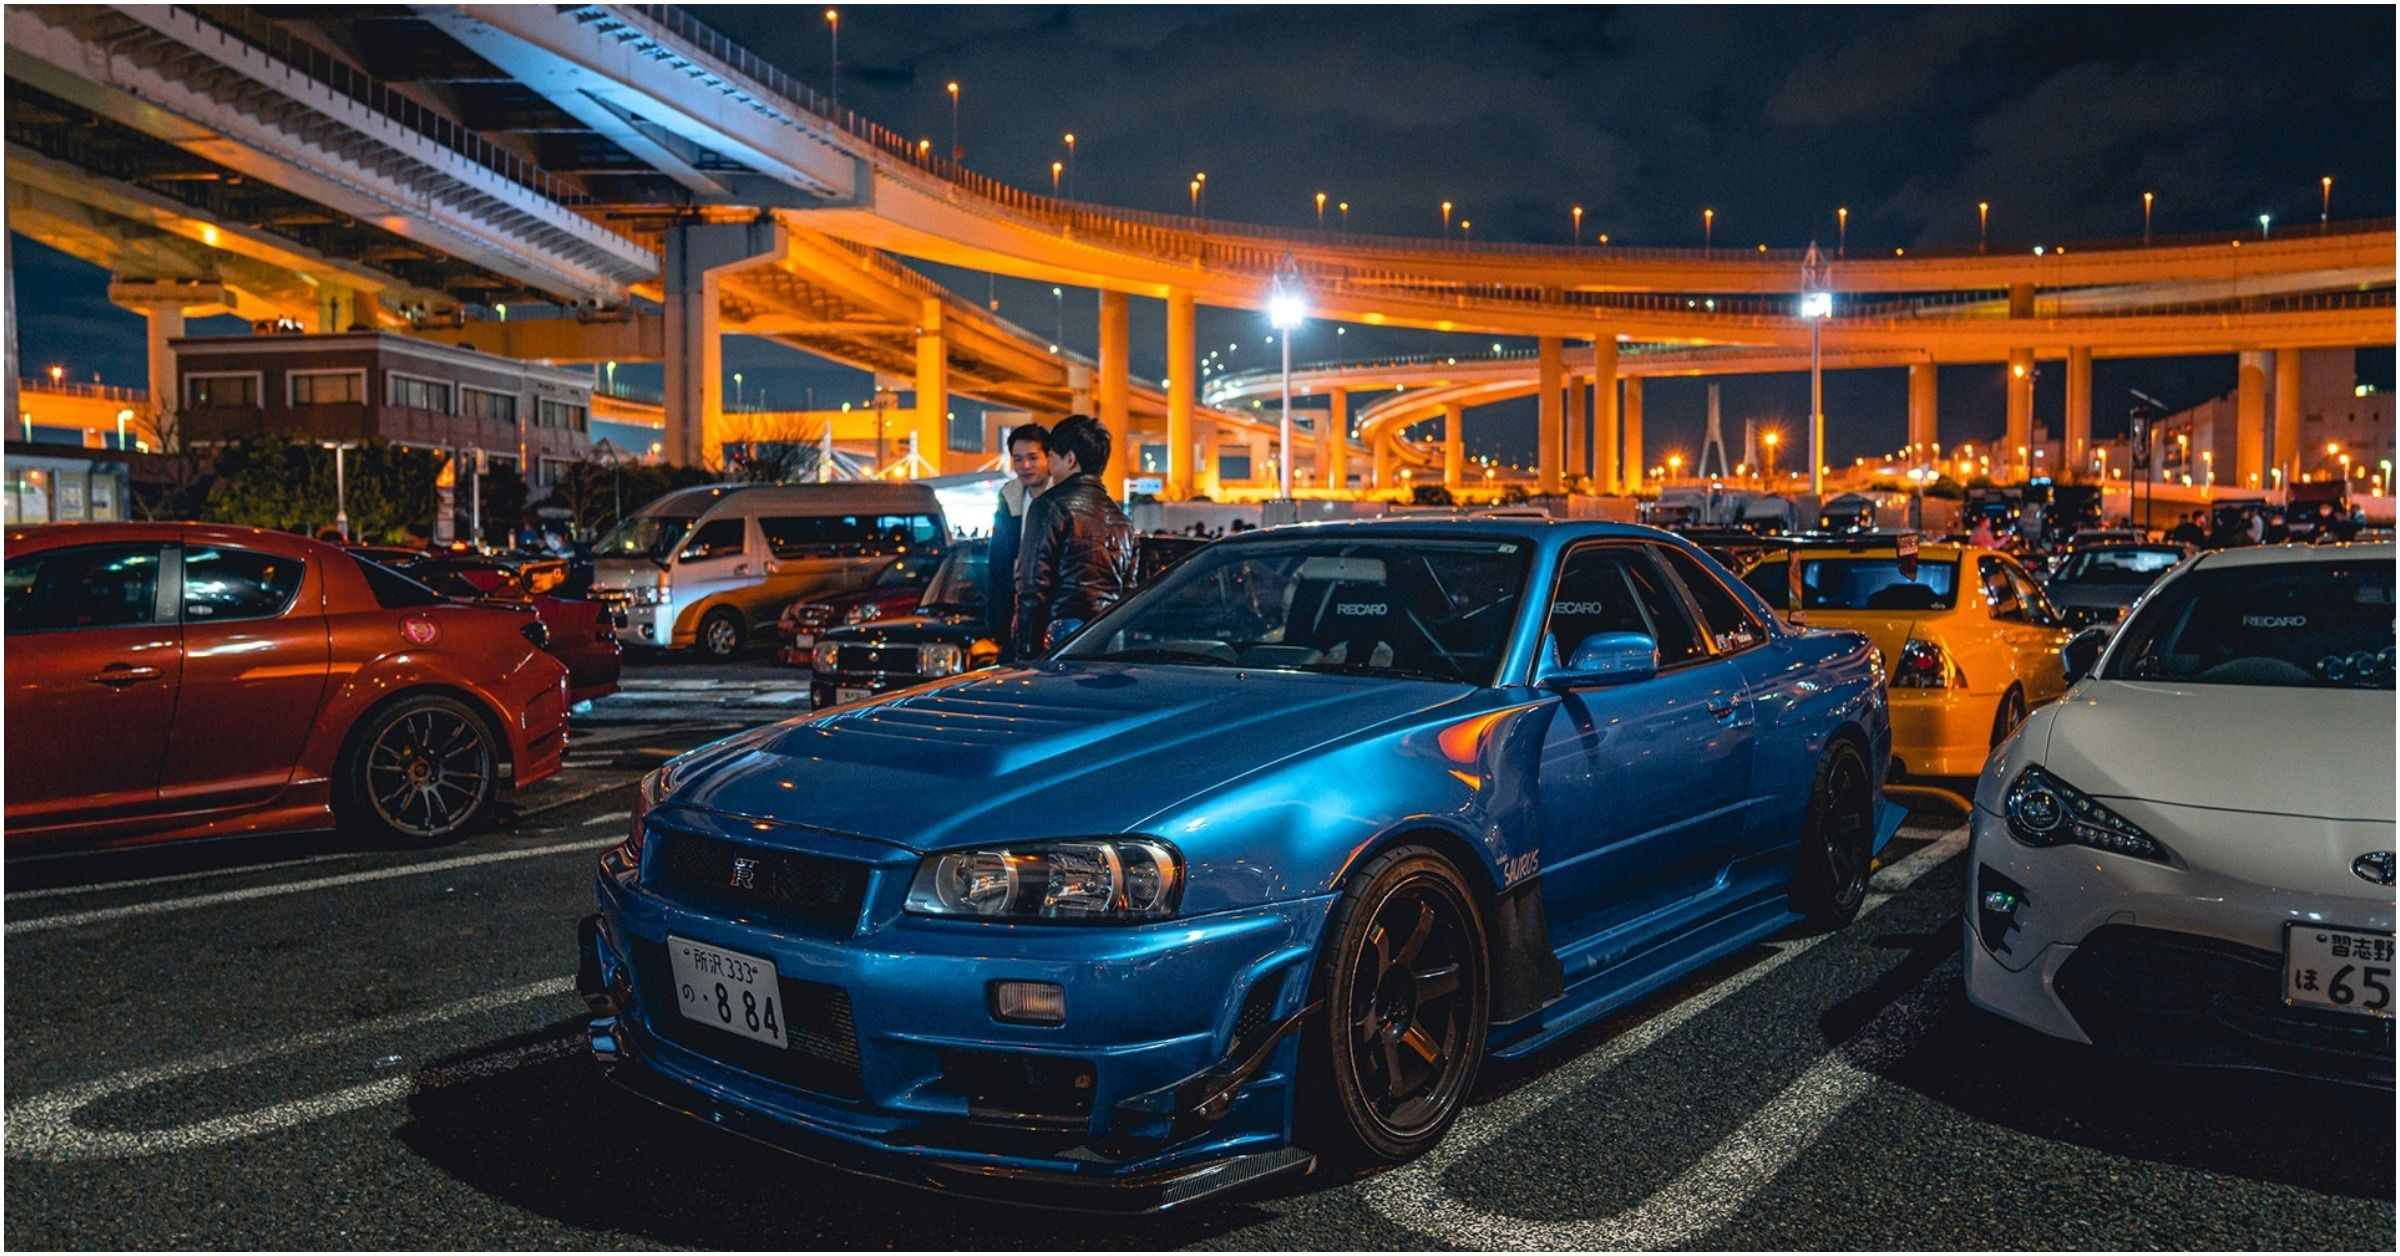 Here S What We Know About Japan S Underground Street Racing Scene